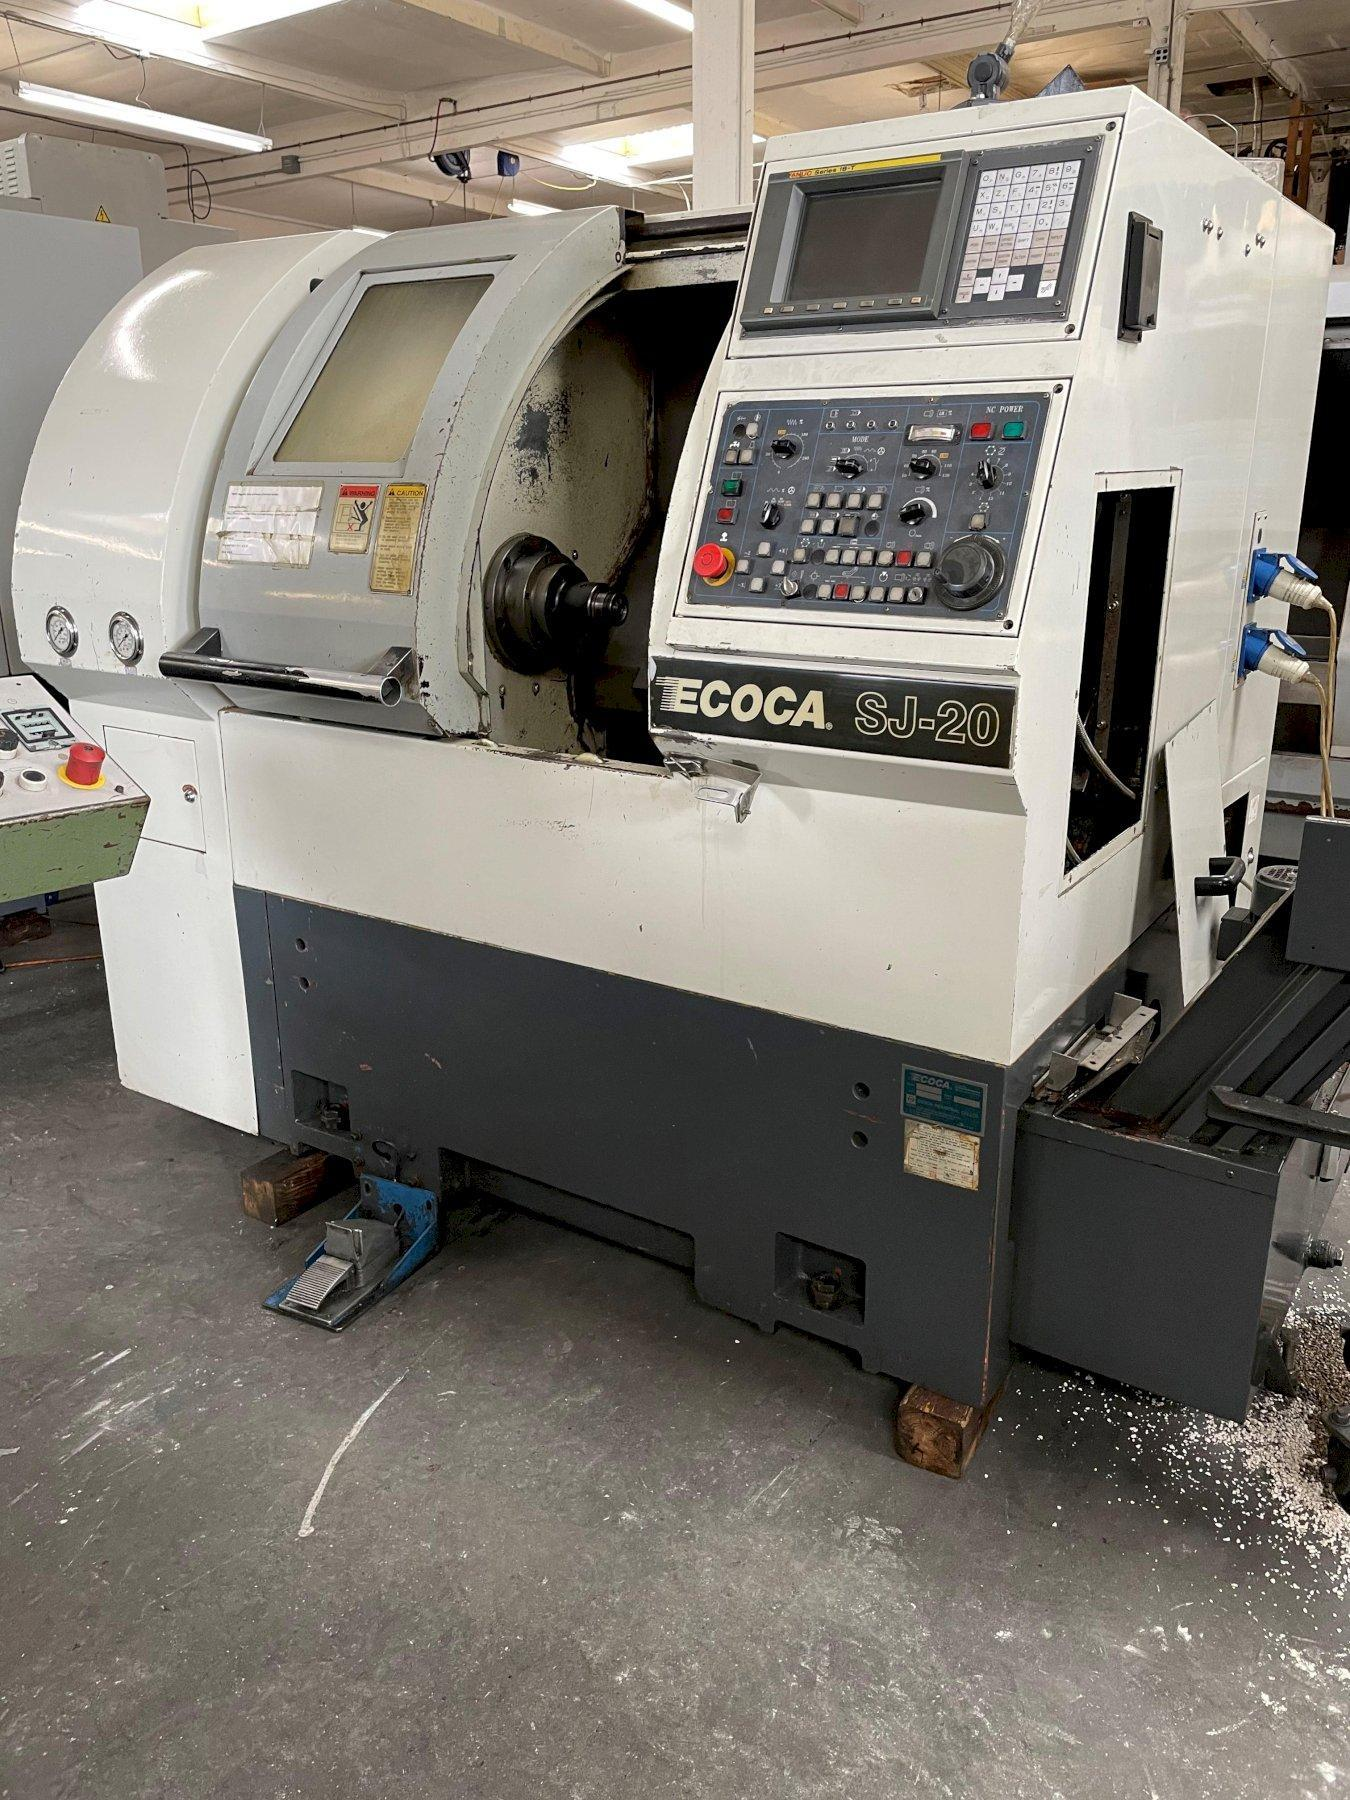 Ecoca SJ-20 CNC Lathe 2000 With: Fanuc 18-T CNC Control, 8-Station Turret, 5C Collet Nose, Tailstock, and Chip Conveyor.